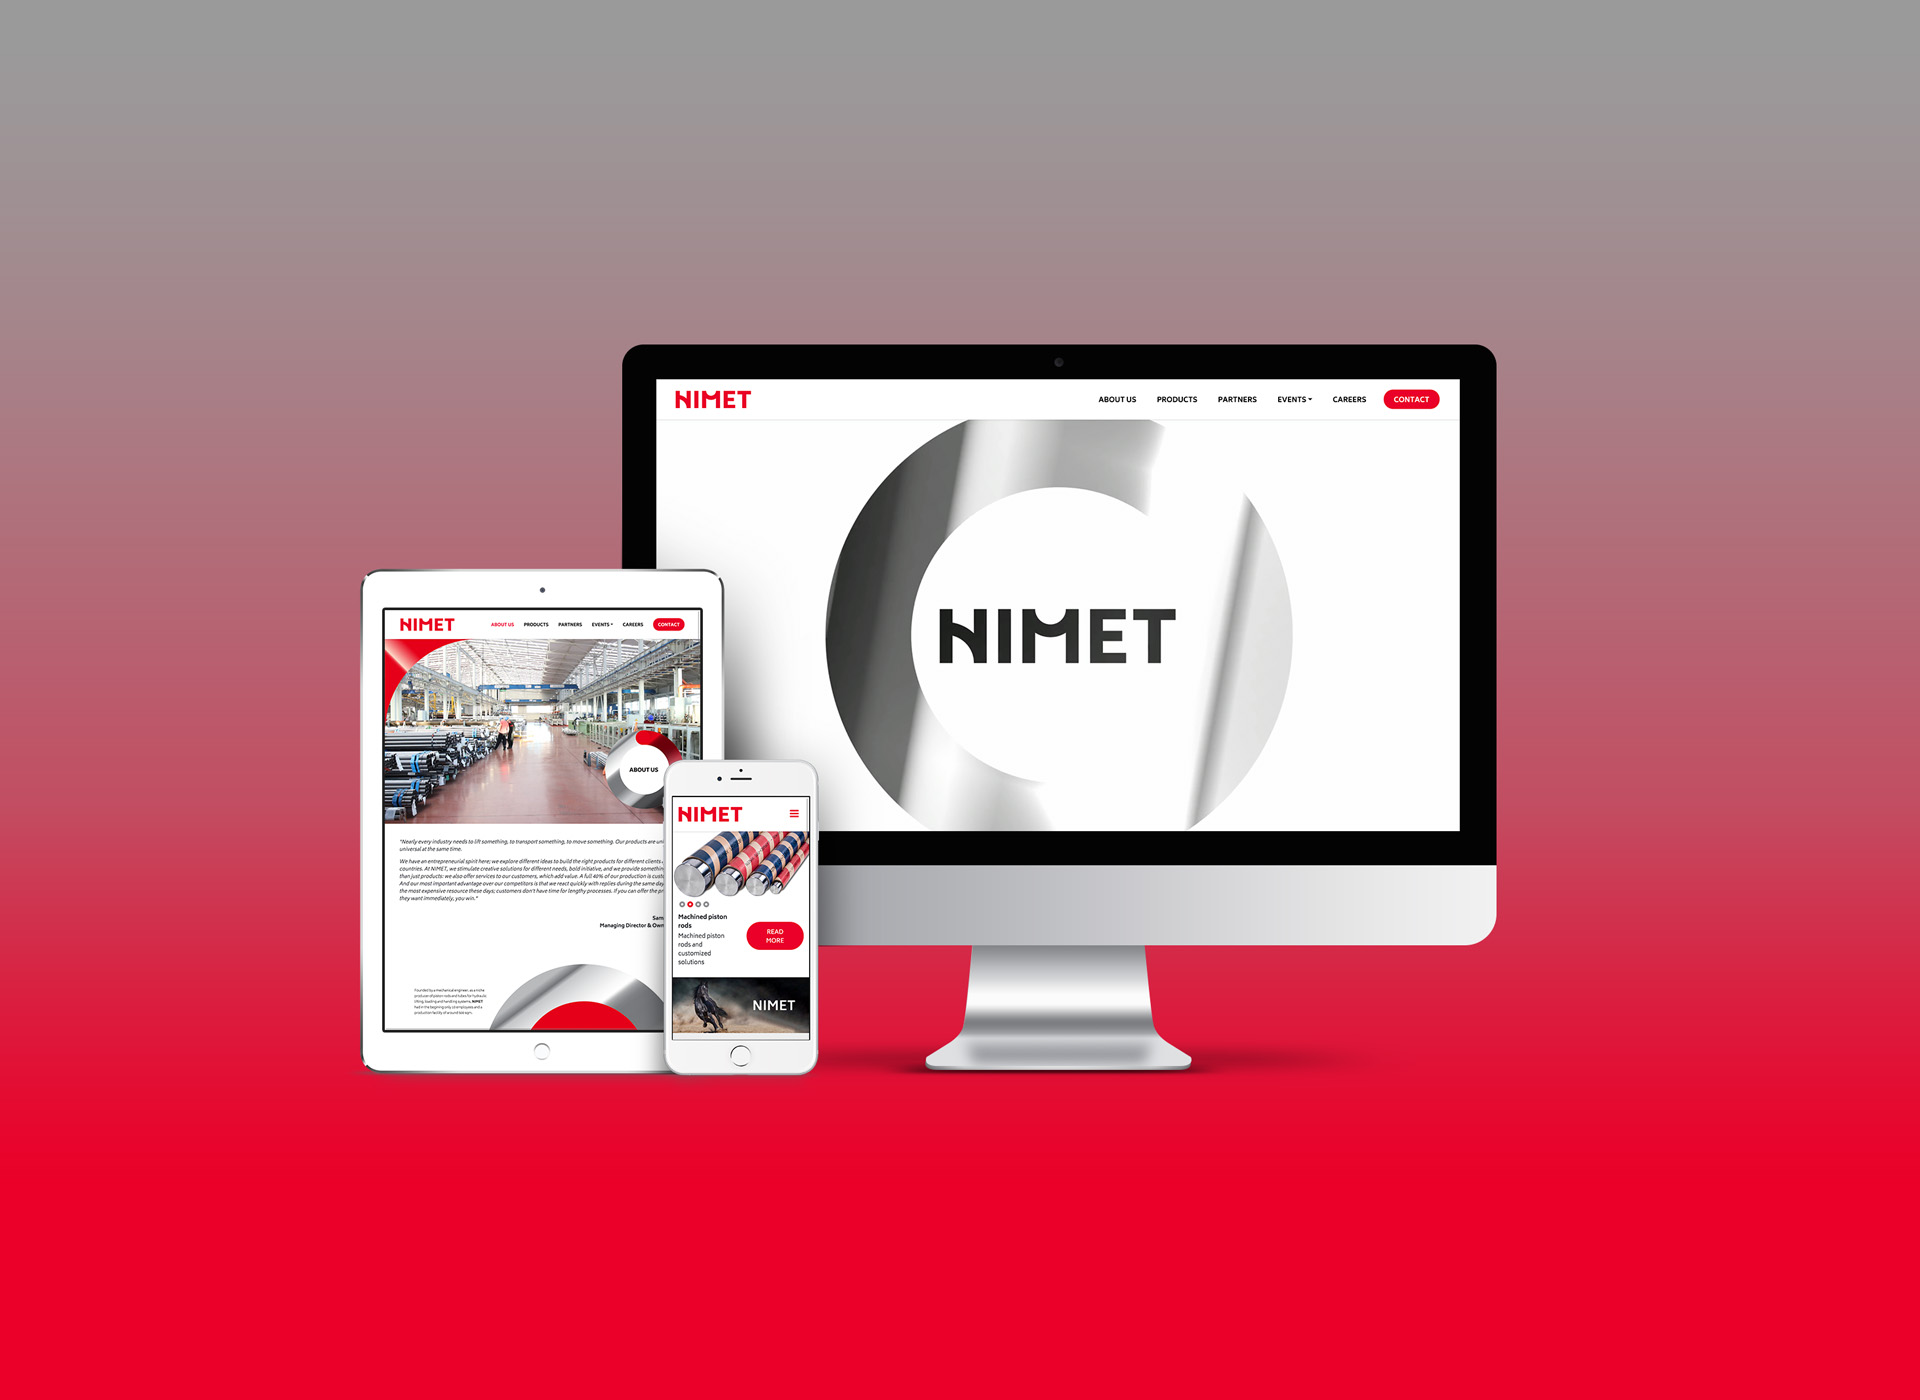 NIMET portofoliu inoveo devices